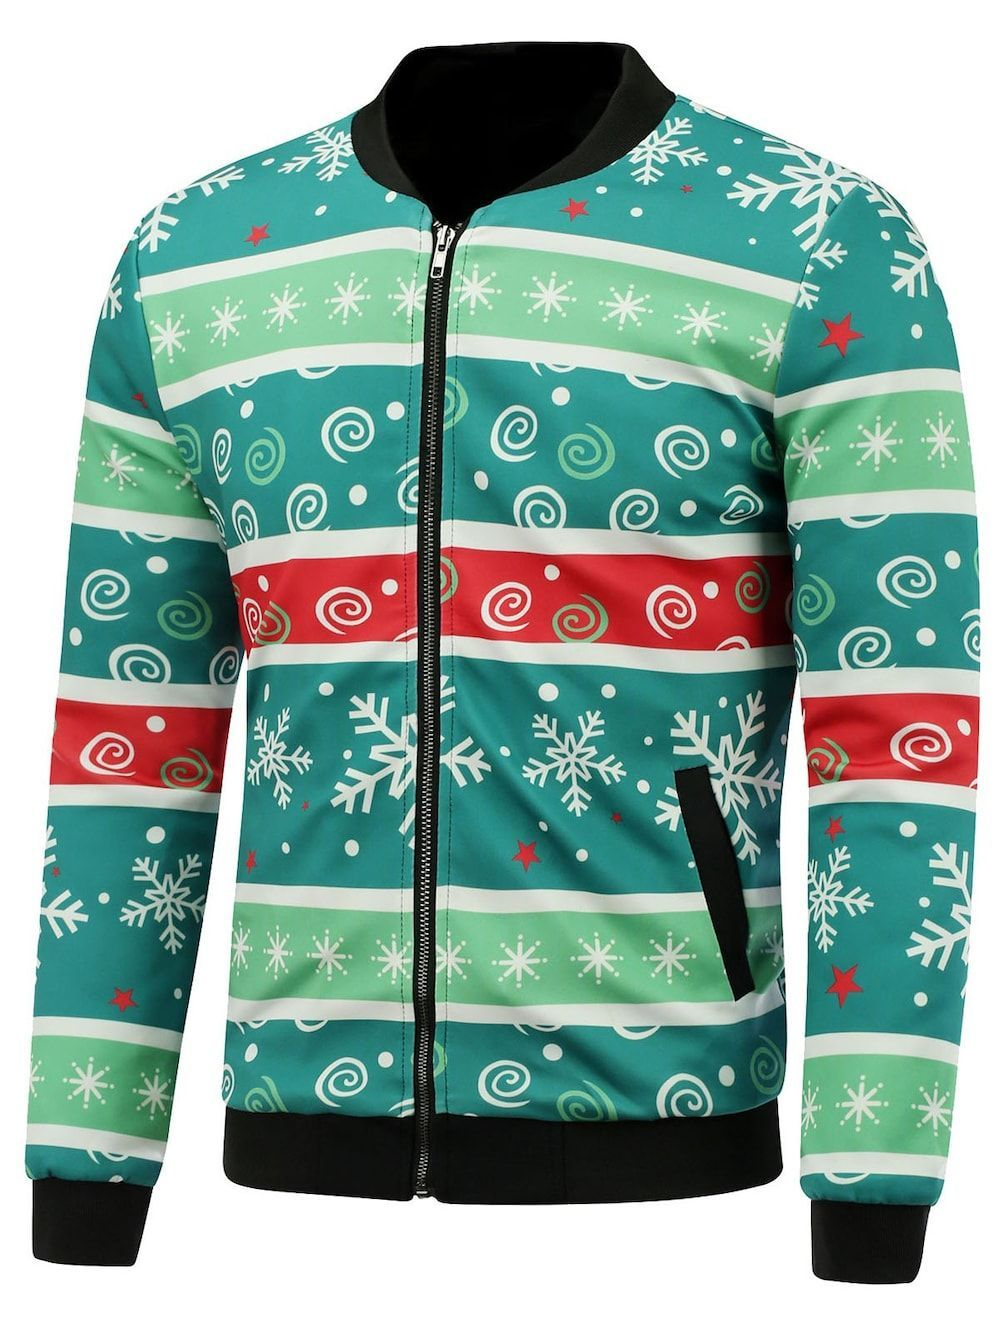 9df8805a47aff Competitive Green M Jackets online, Gamiss offers you Stand Collar 3D  Christmas Stripe and Snowflake Print Padded Jacket at $33.38, we also offer  Wholesale ...